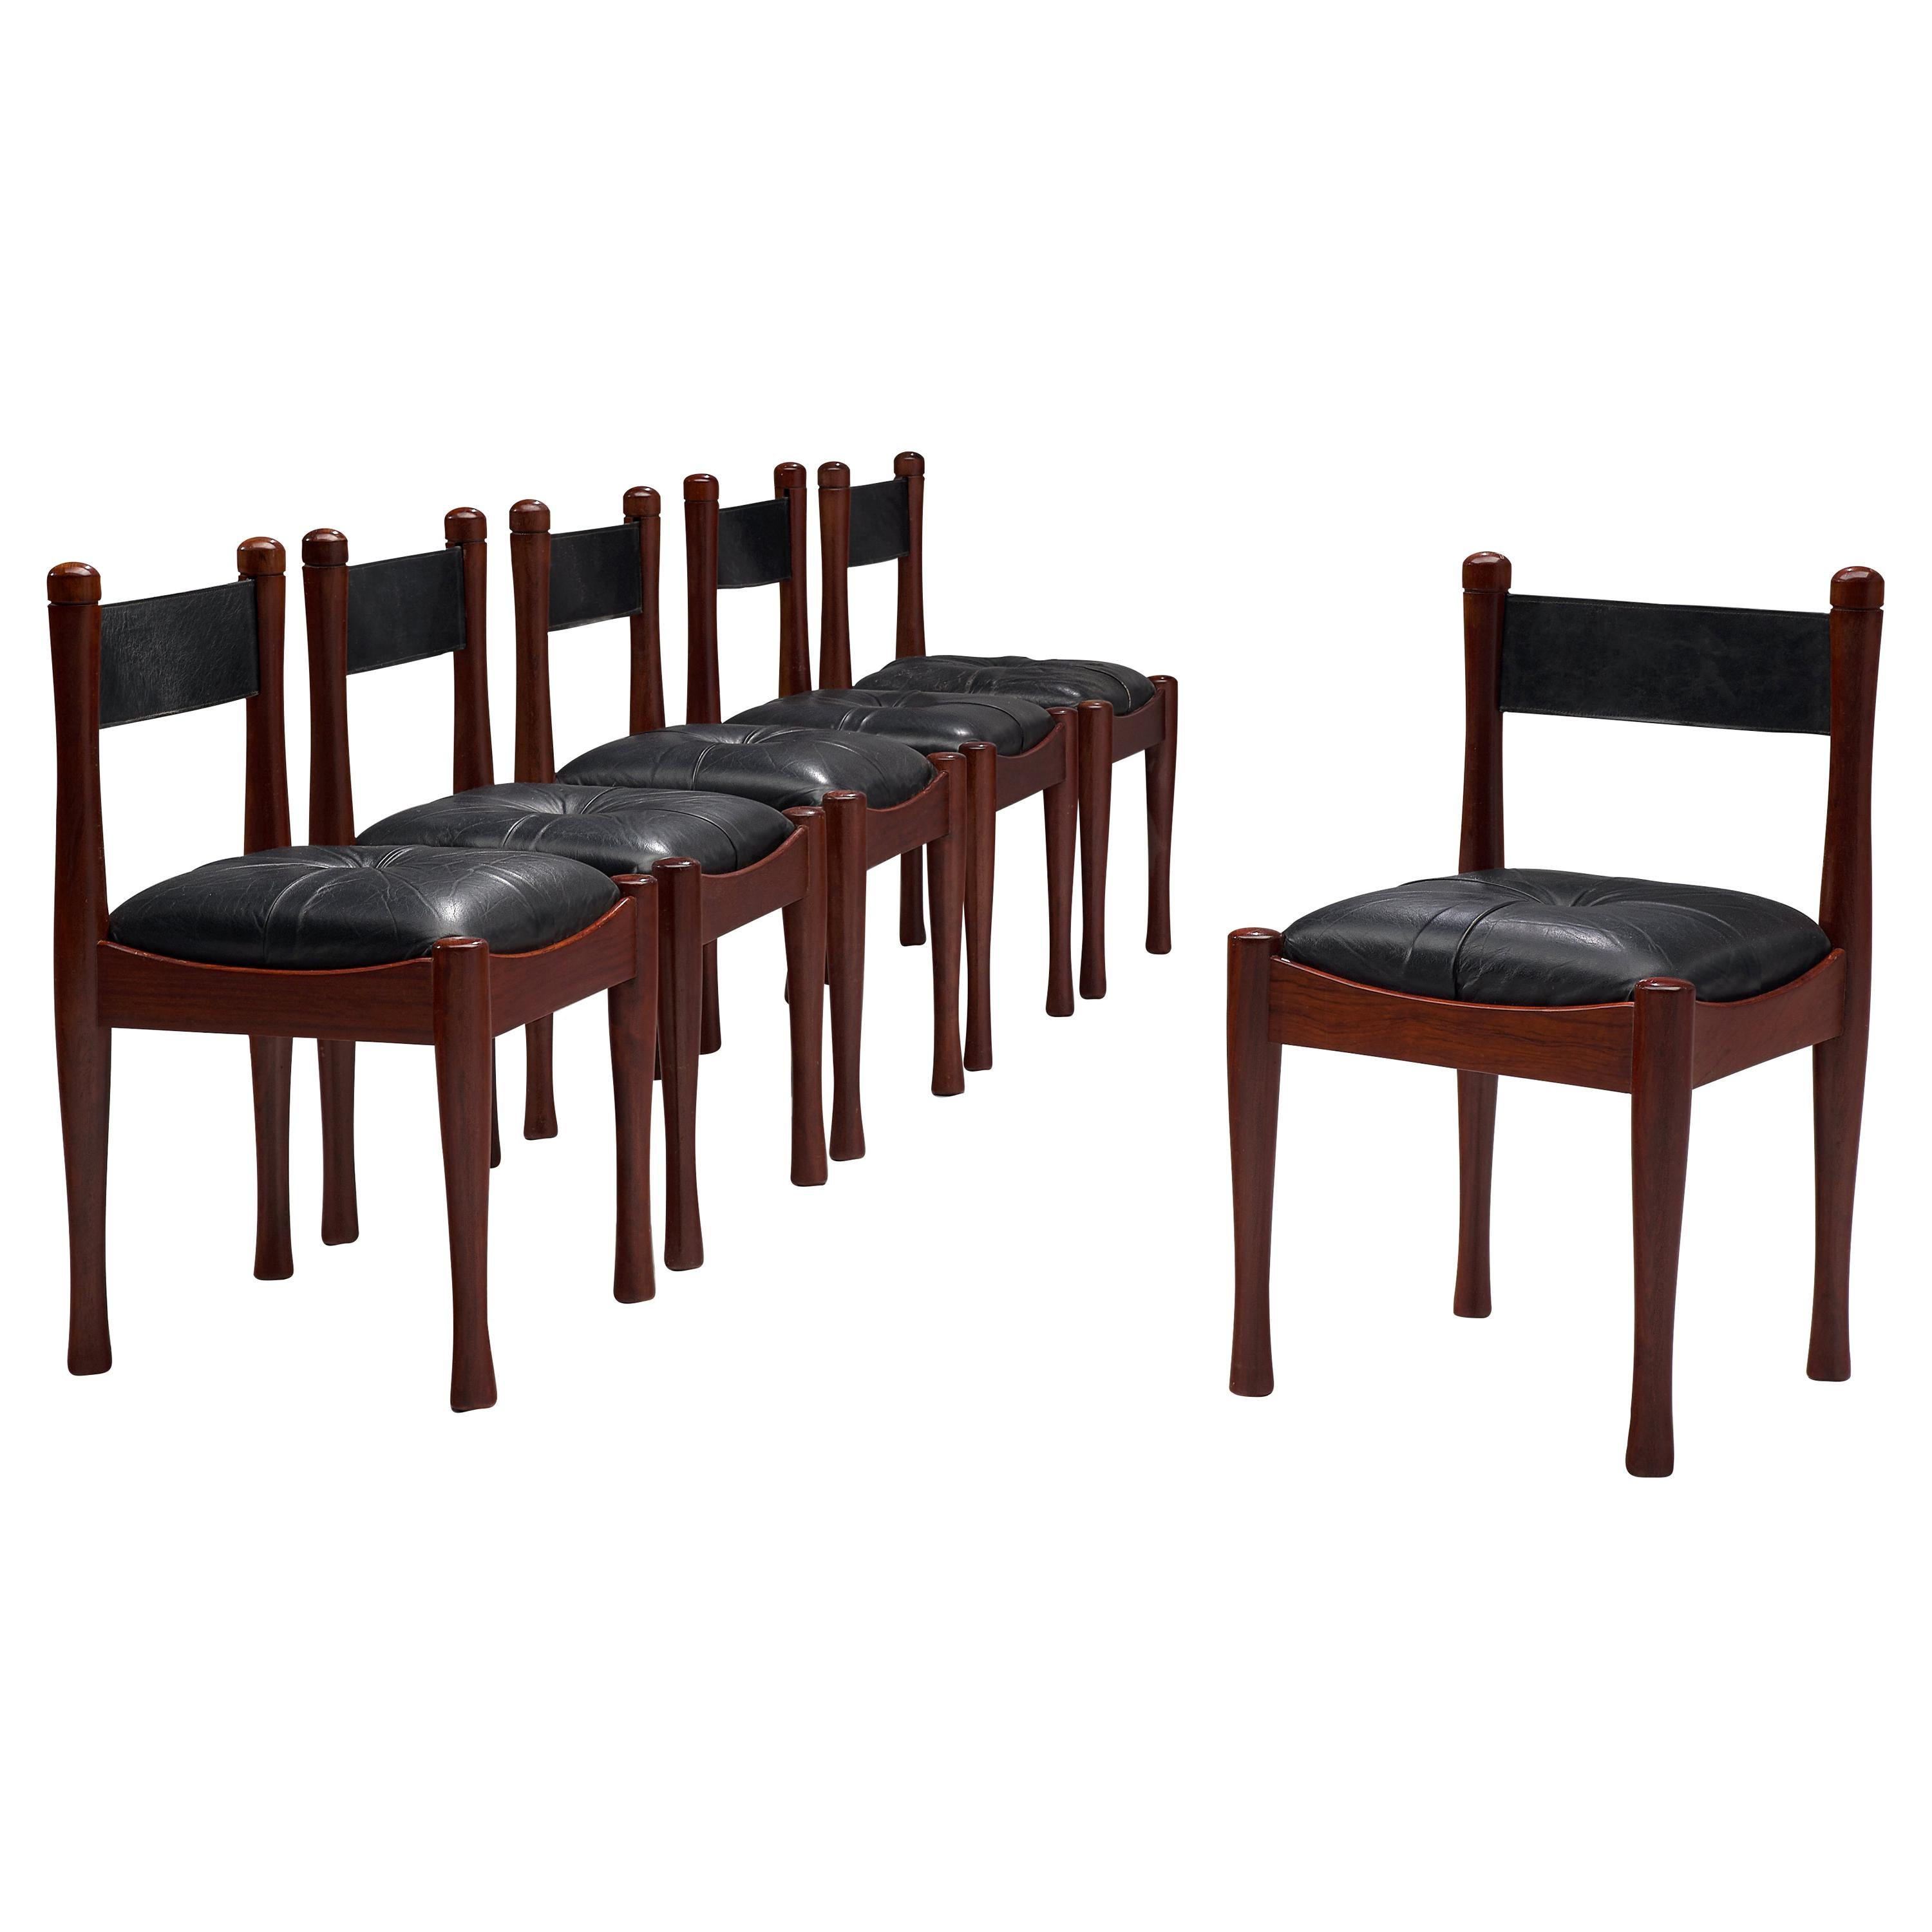 Set of Six Dining Chairs by Silvio Coppola in Stained Wood and Leather